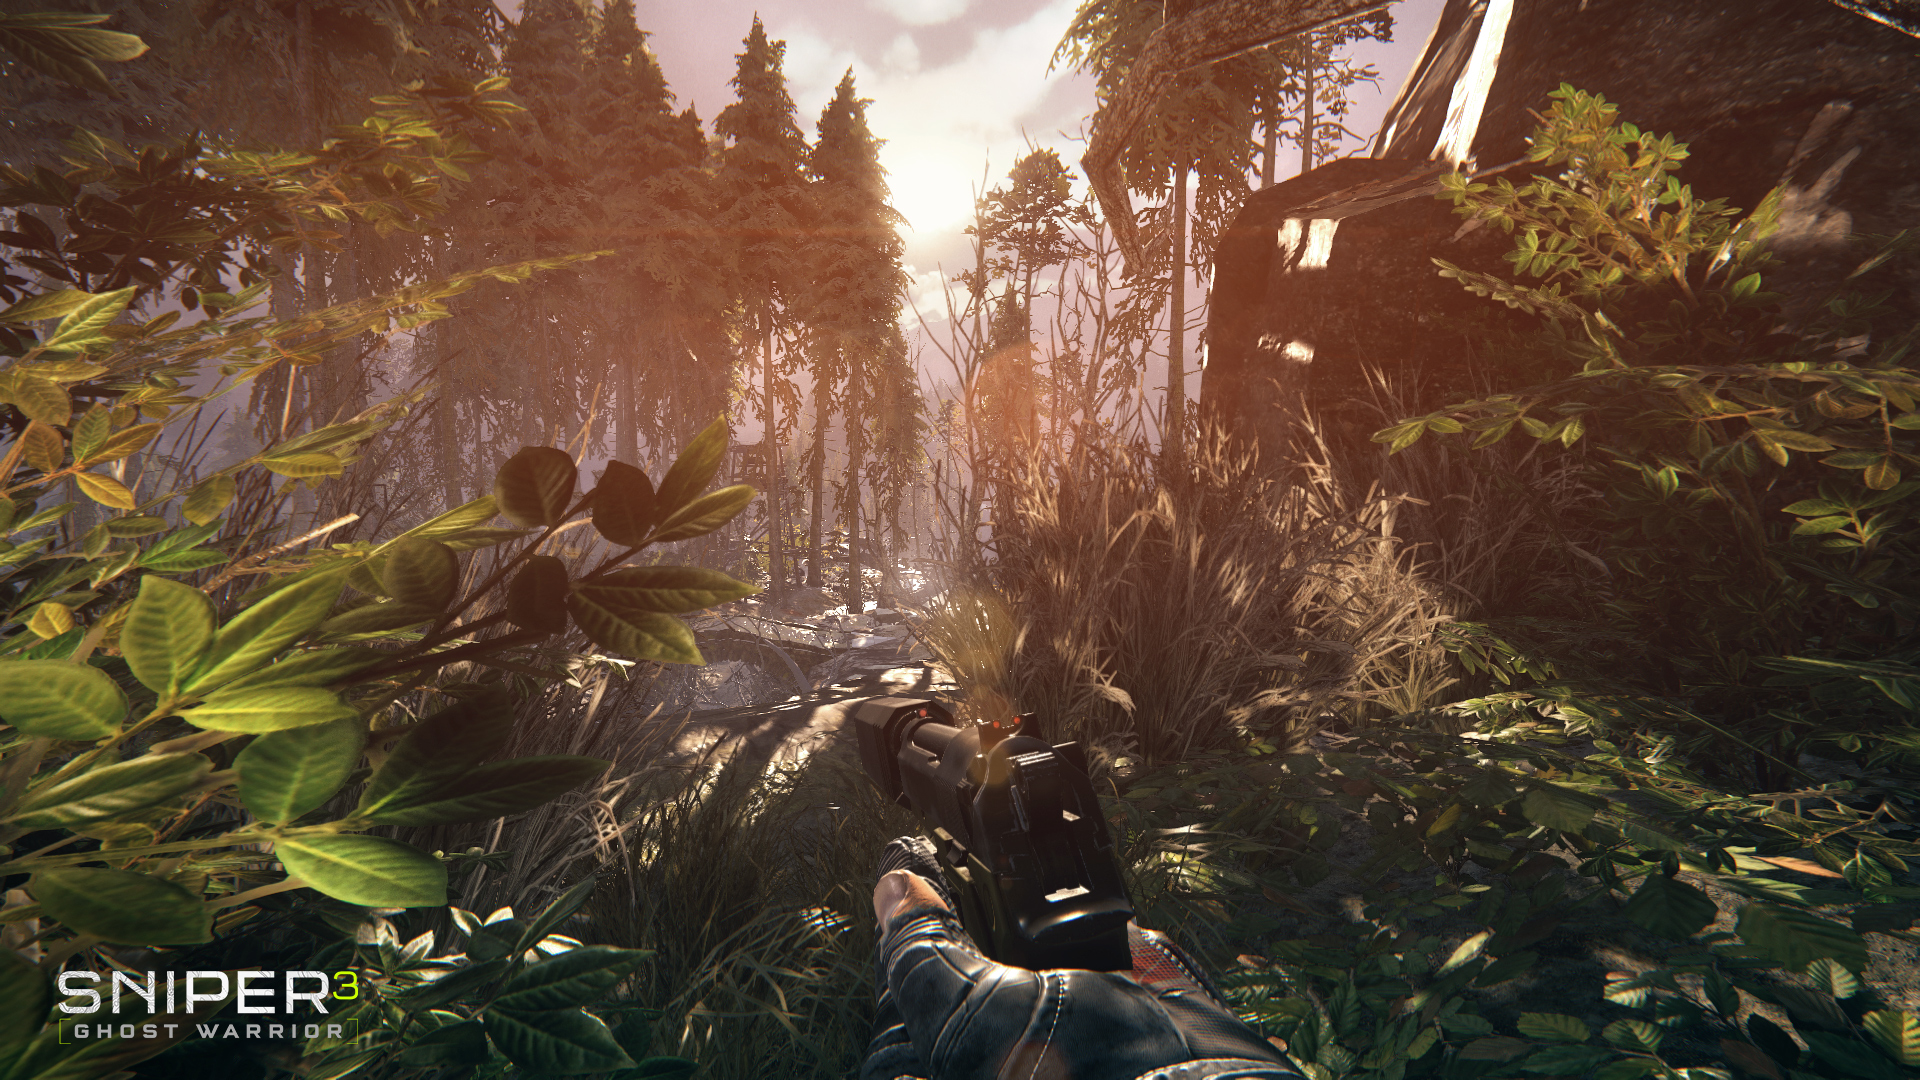 CryENGINE Powered Sniper: Ghost Warrior 3 Looks Stunning In